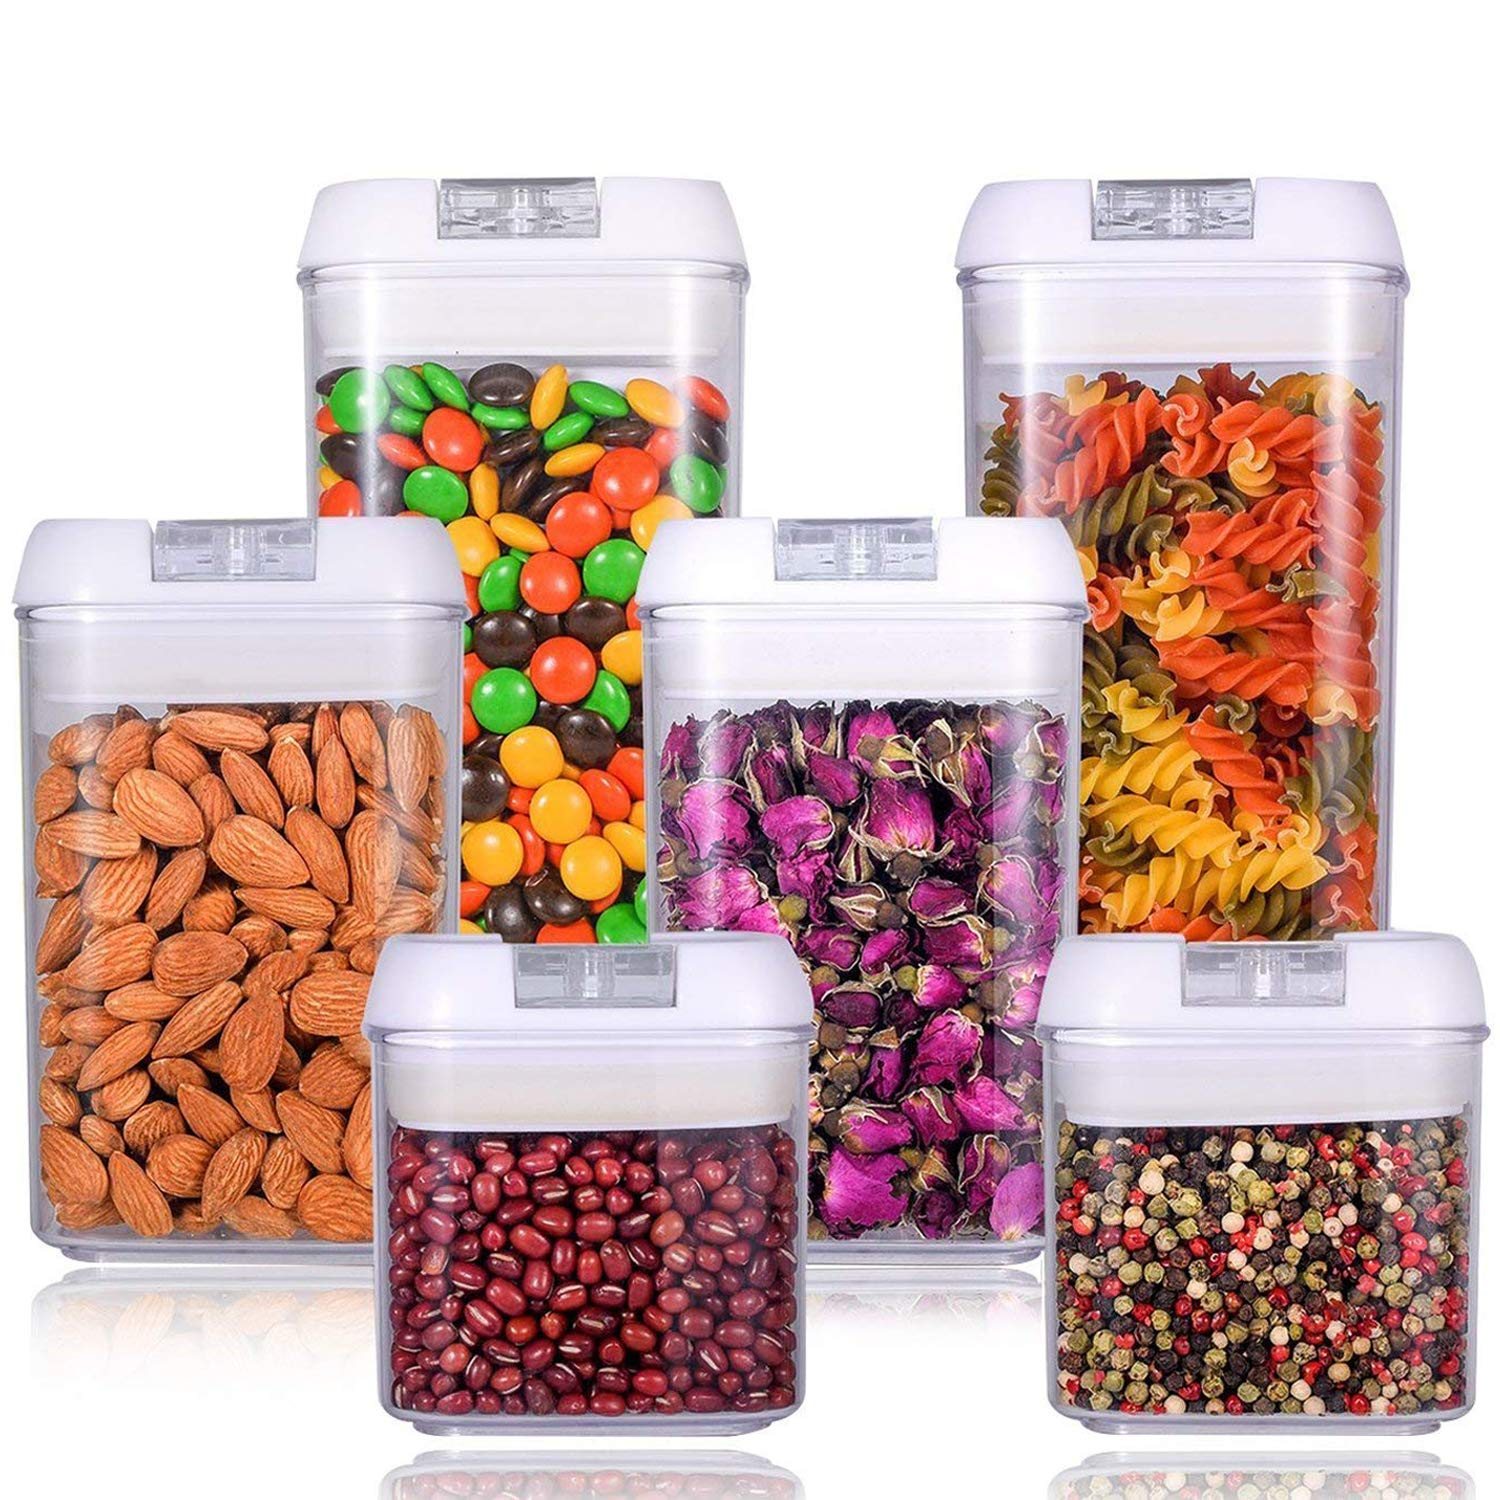 U-miss Airtight Food Storage Container Set - Durable Plastic - BPA Free - Clear Plastic with White Lids